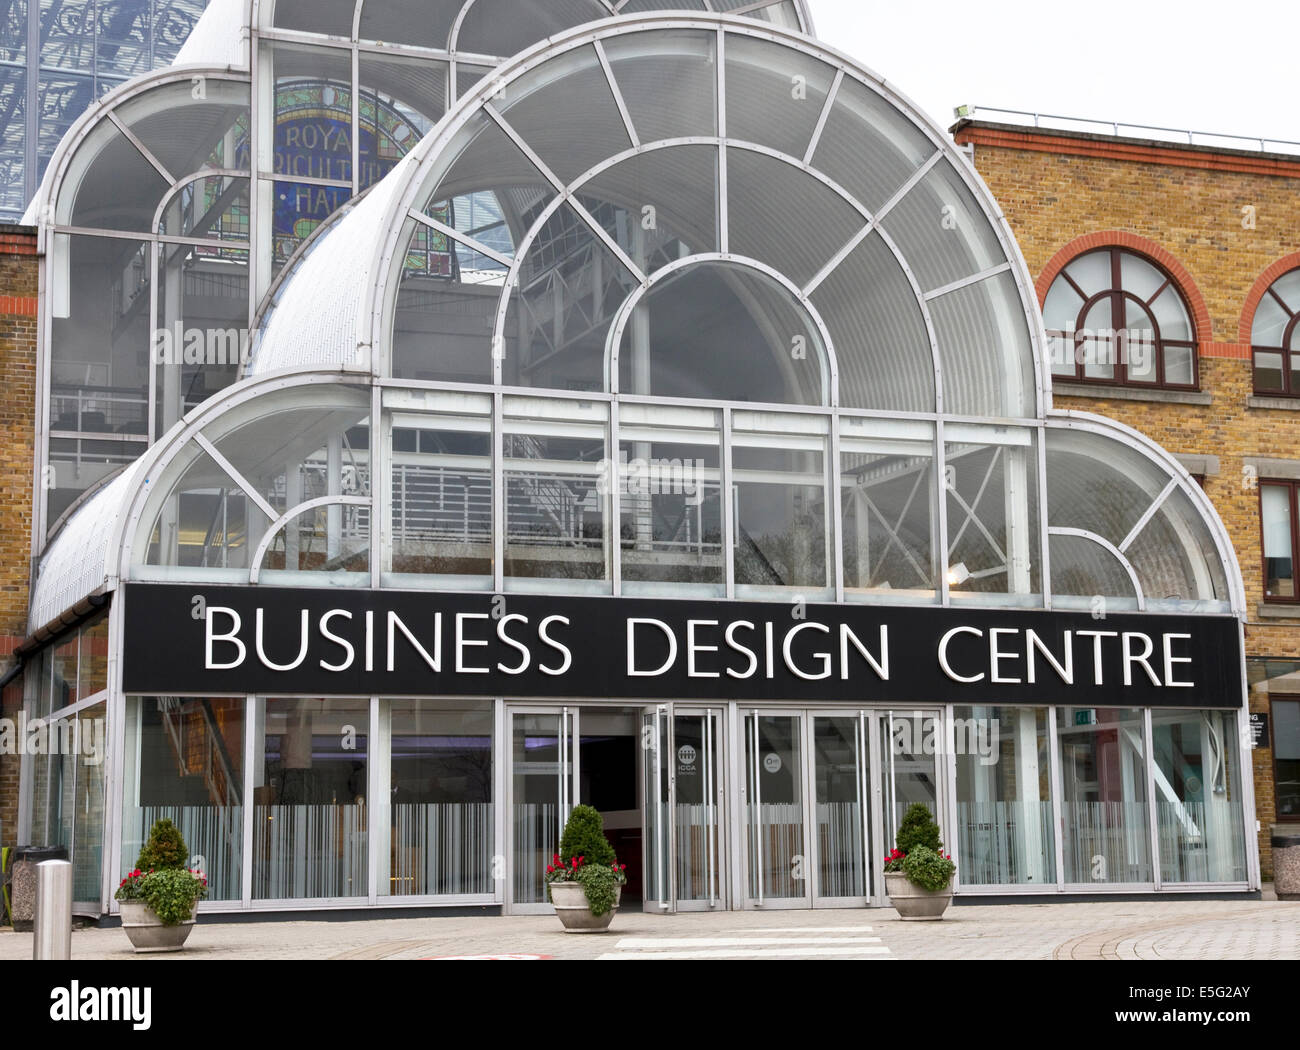 Business Design Centre (Formerly The Royal Agricultural Hall), Islington, London, England, UK - Stock Image